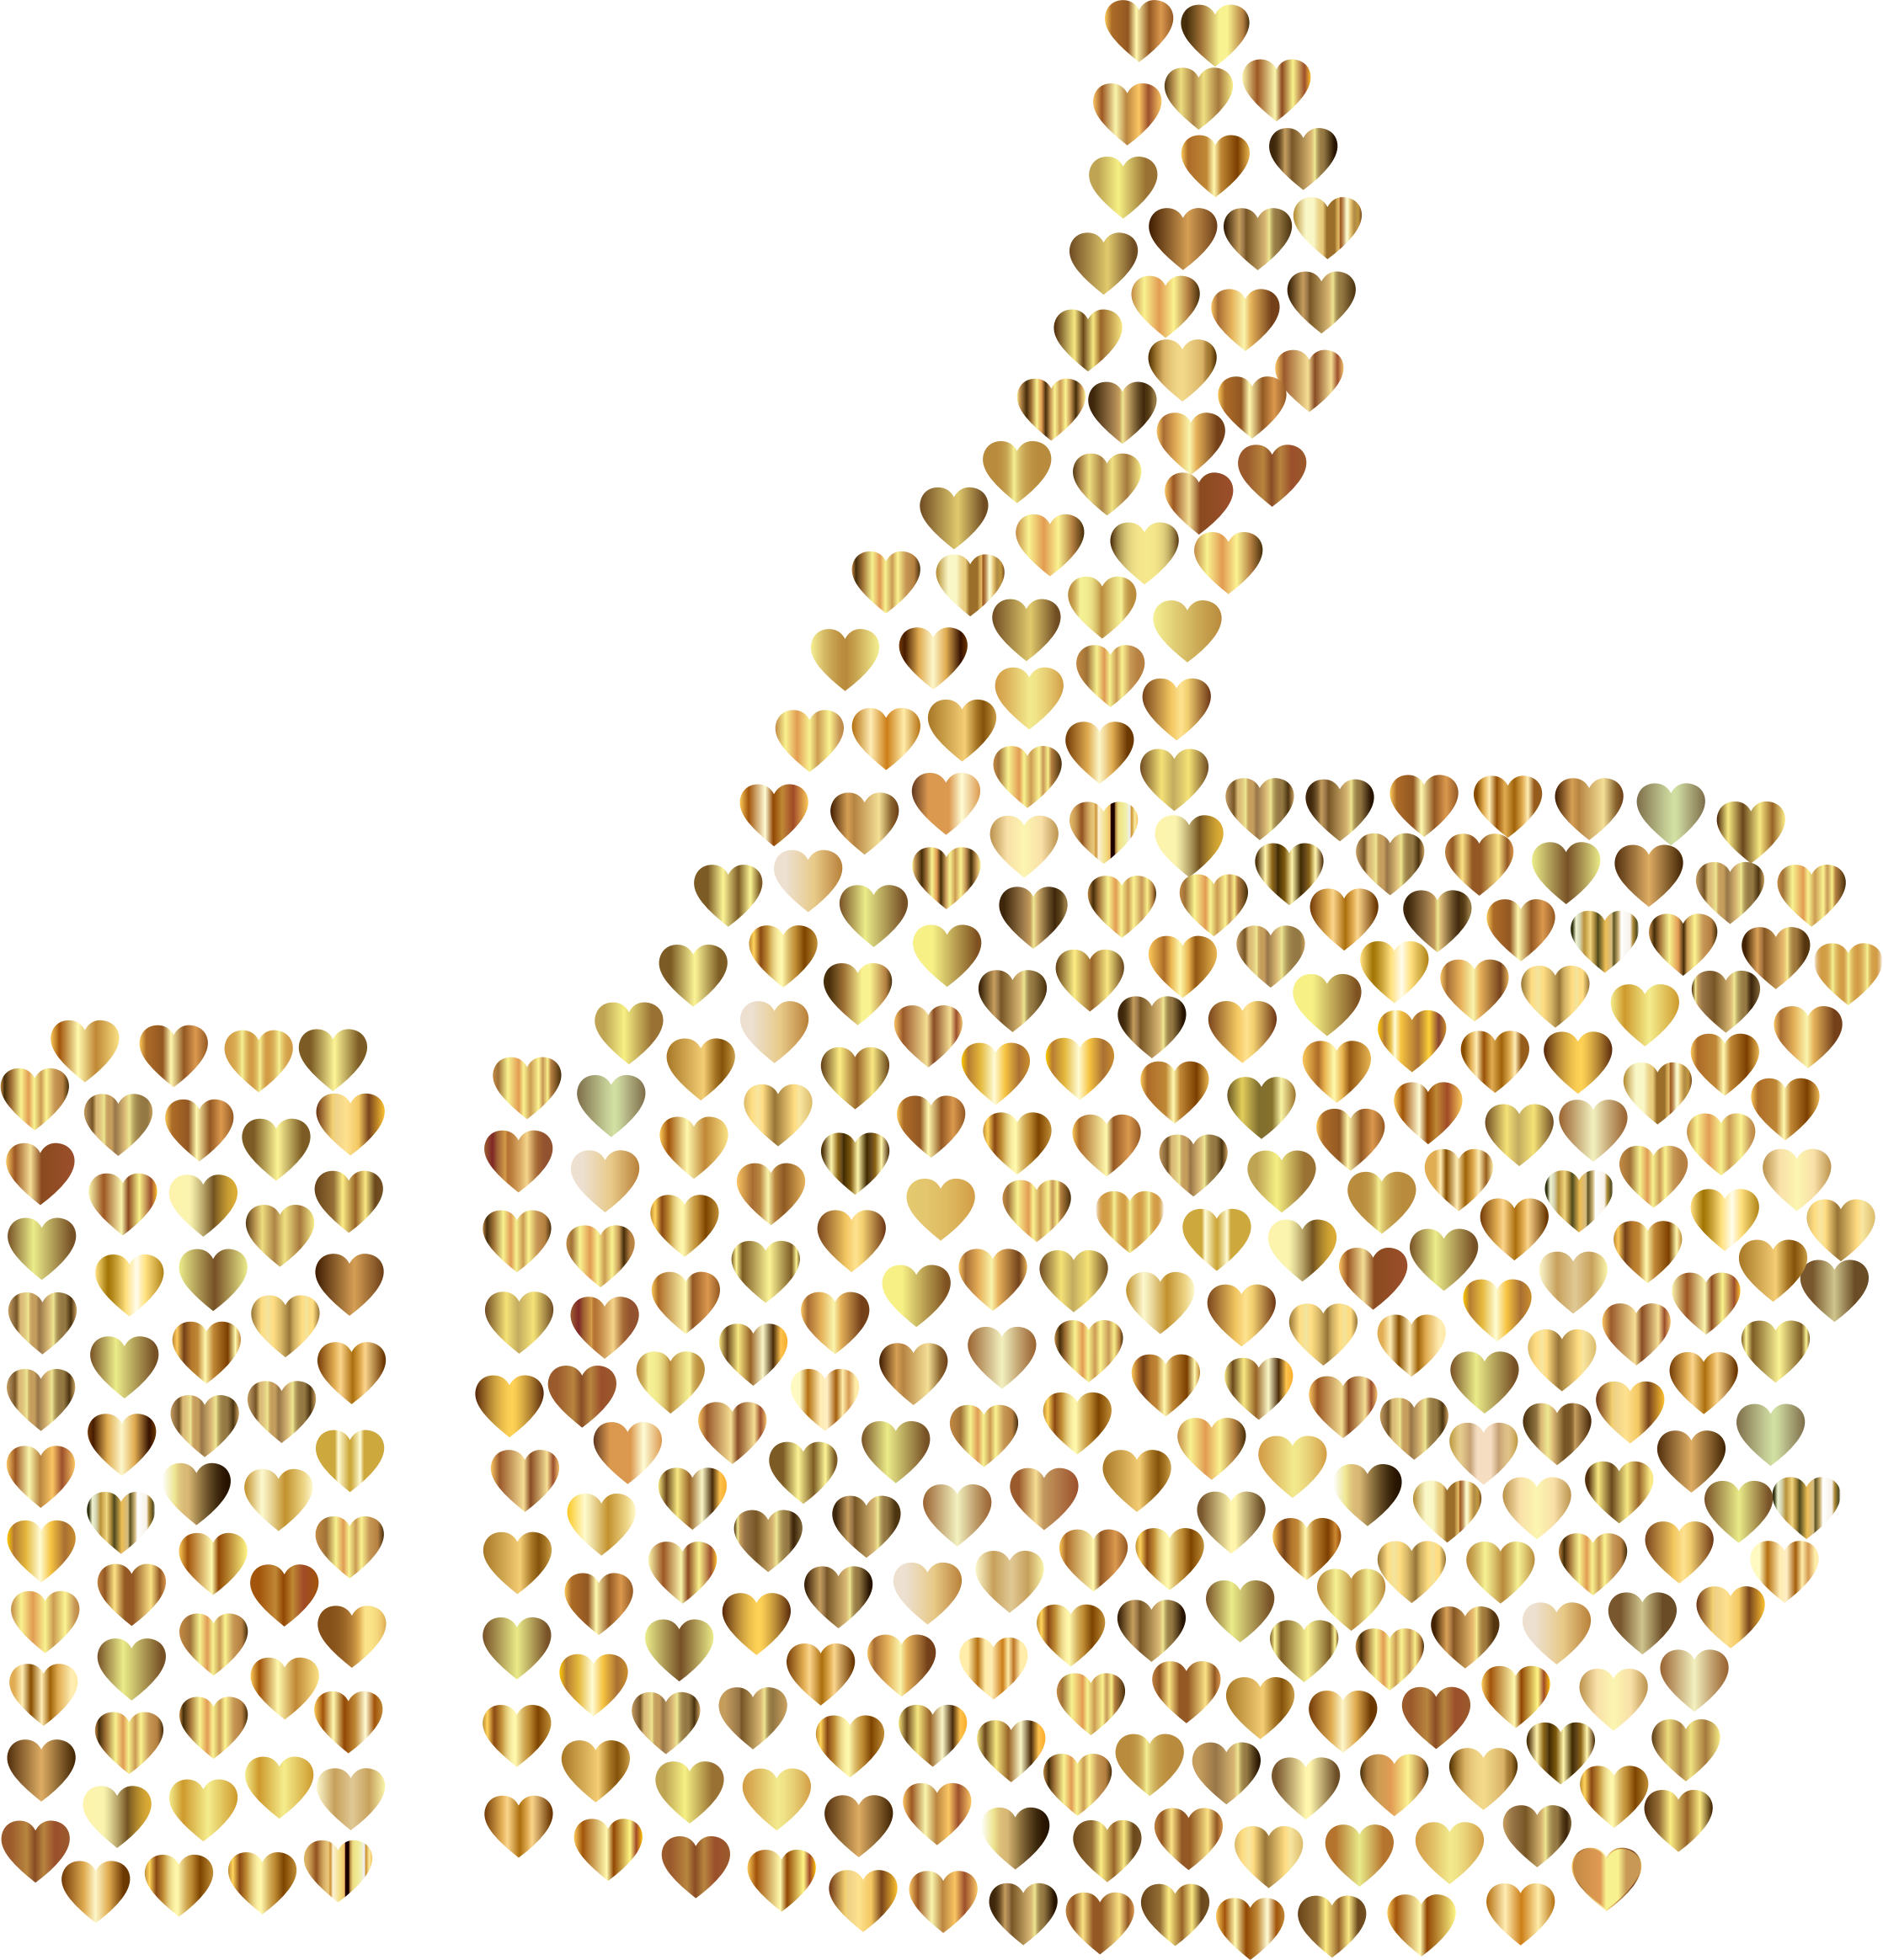 Clipart thumbs up silhouette vector library Clipart - Prismatic Hearts Thumbs Up Silhouette 8 No Background vector library